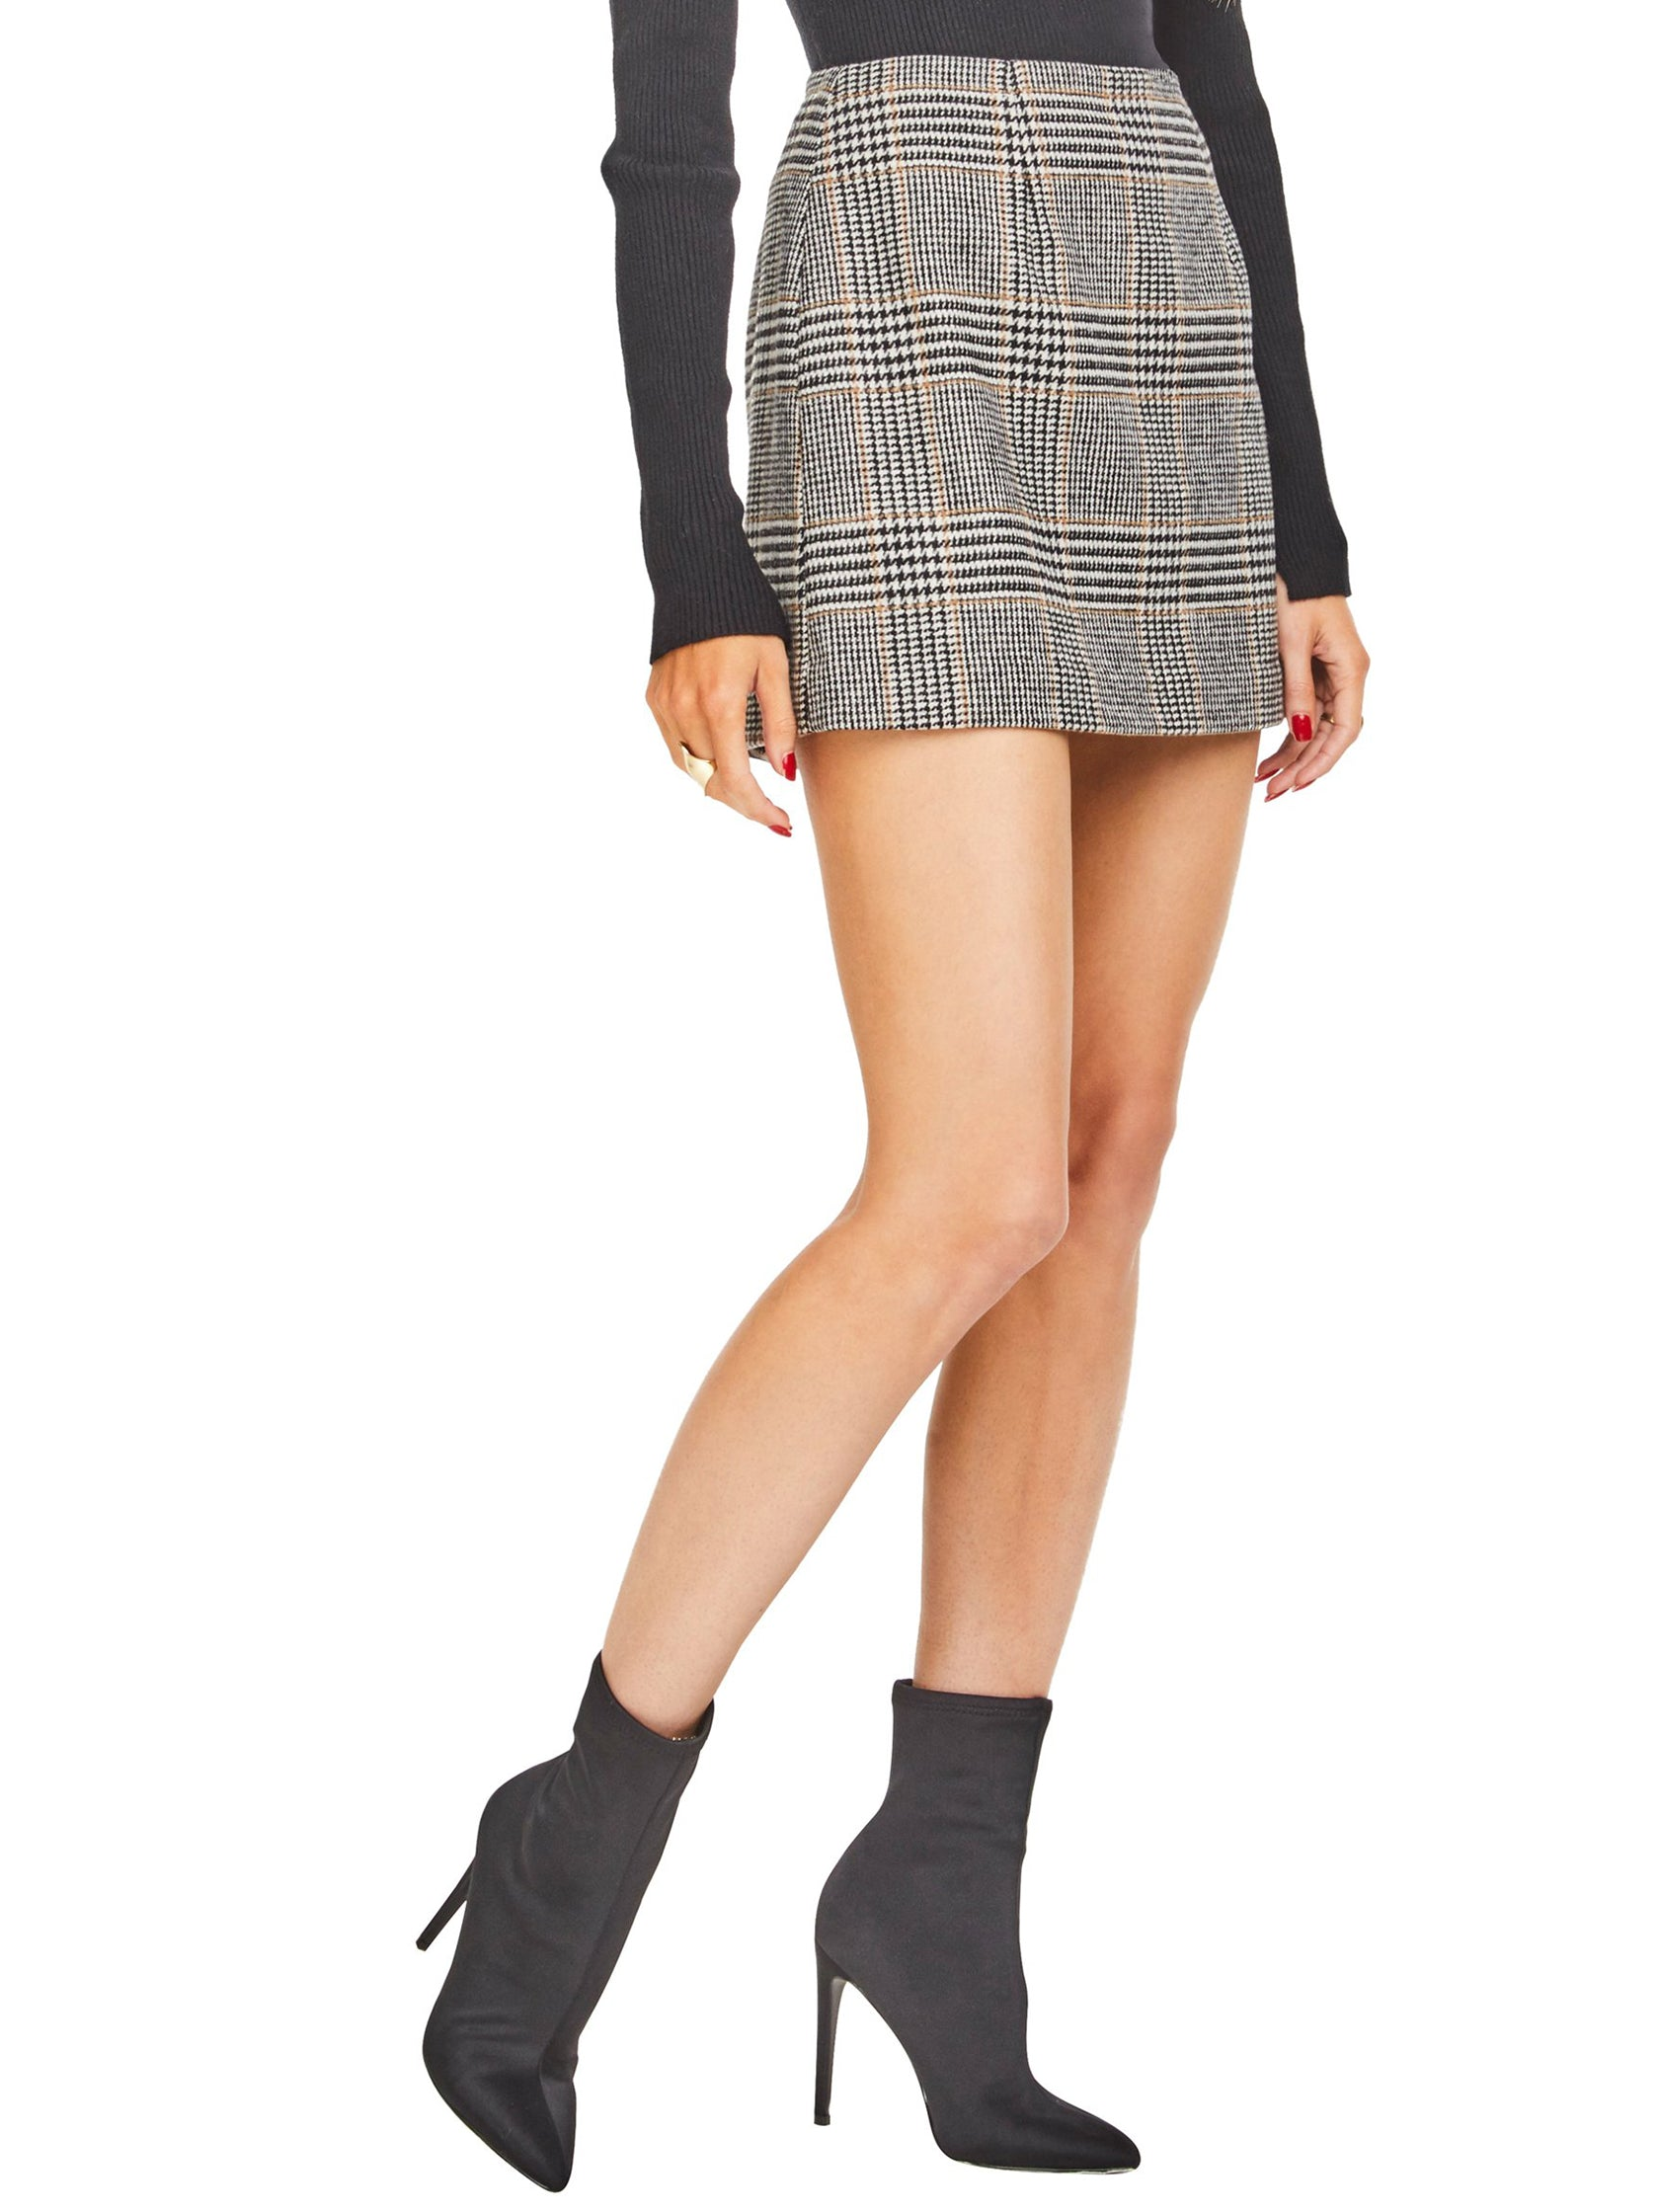 Women wearing a skirt rental from ASTR called Raye Skirt